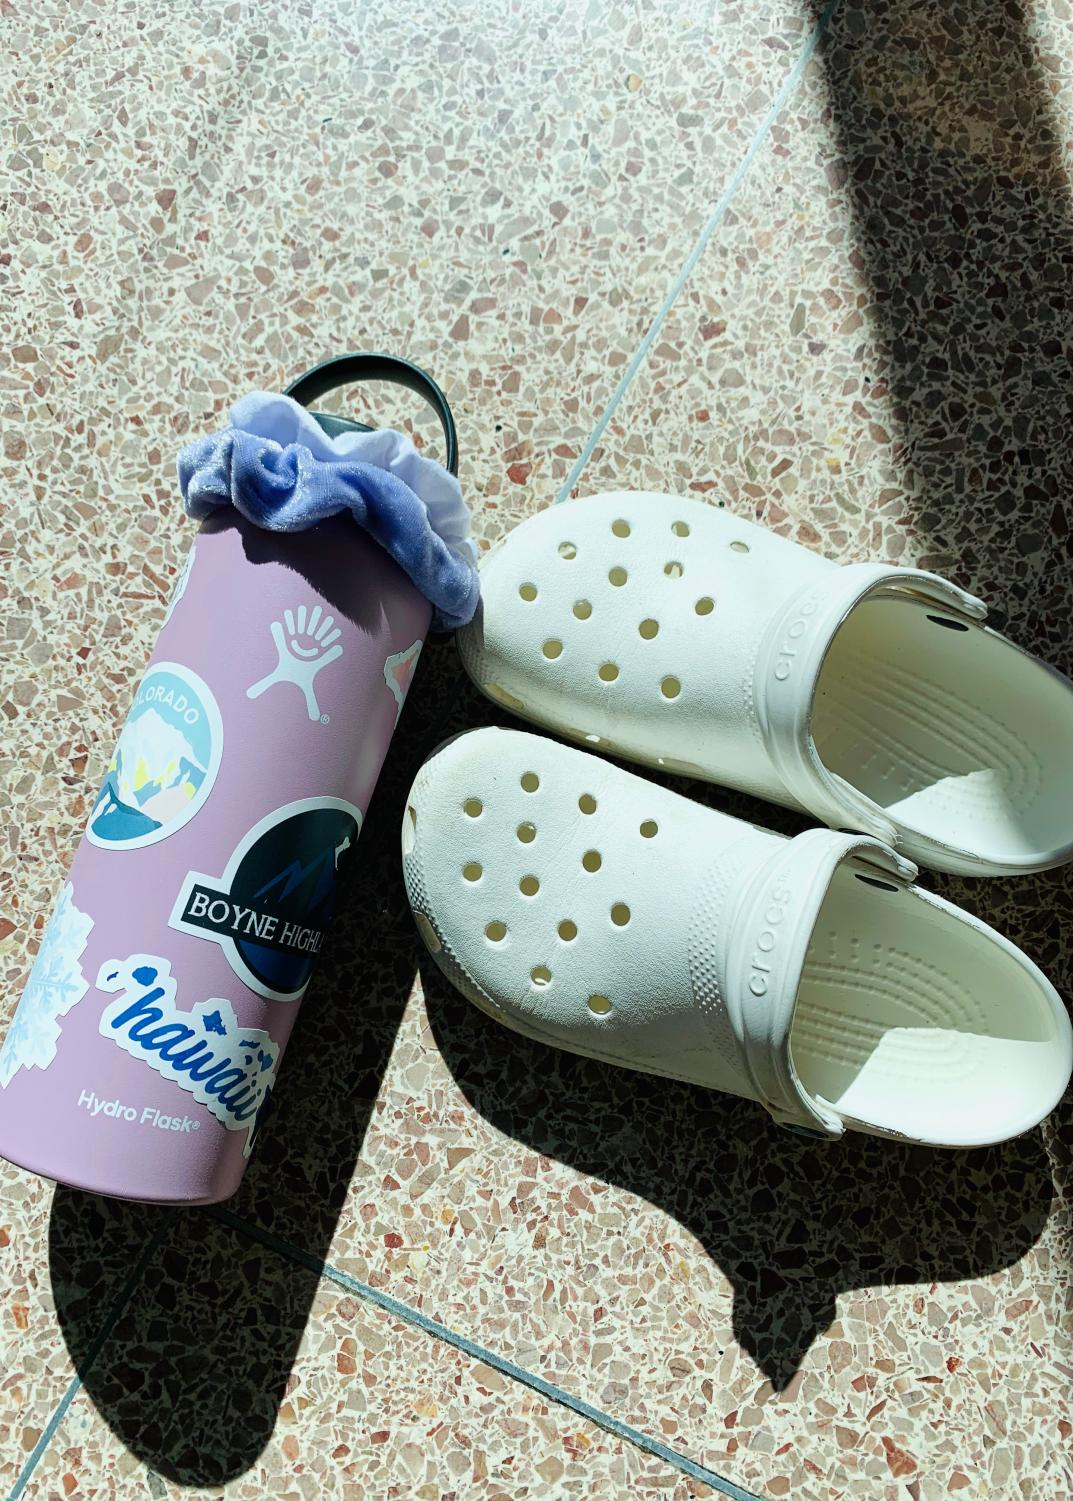 Every+VSCO+girl+has+a+Hydroflask+and+Crocs.